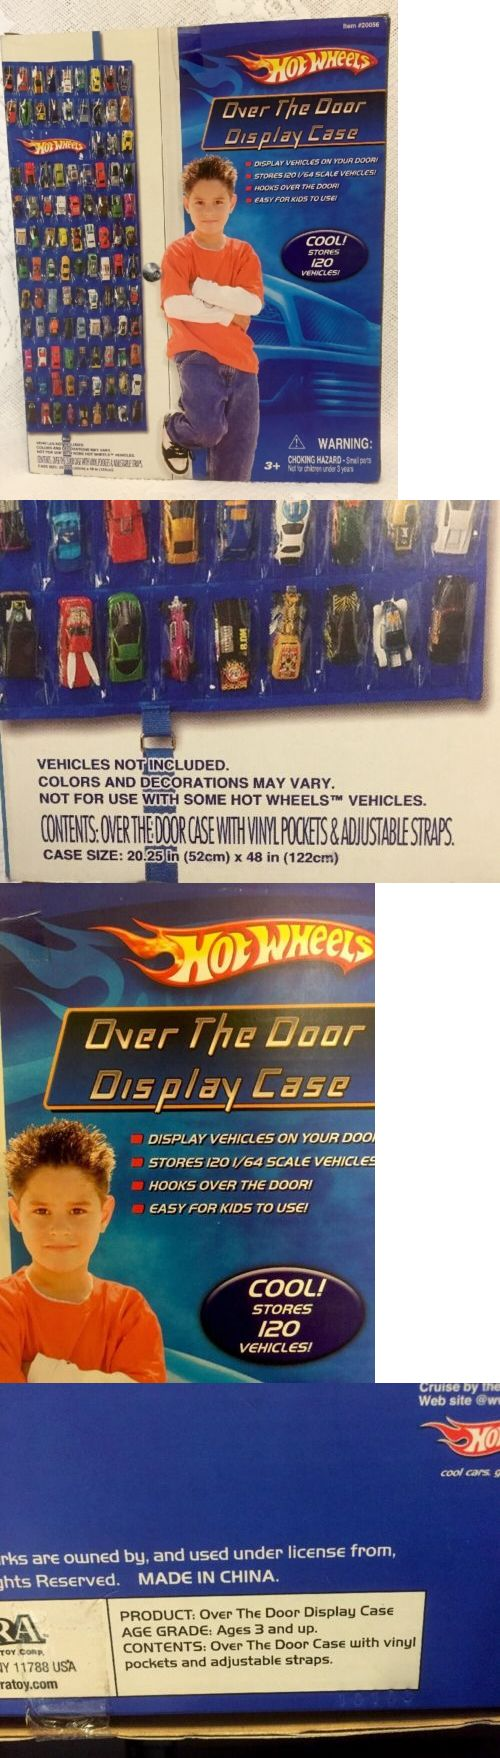 Play Sets 177918: Hot Wheels Hotwheels Over The Door Display Case Item #20056 Stores 120 Cars 1:64 -> BUY IT NOW ONLY: $59.25 on eBay!